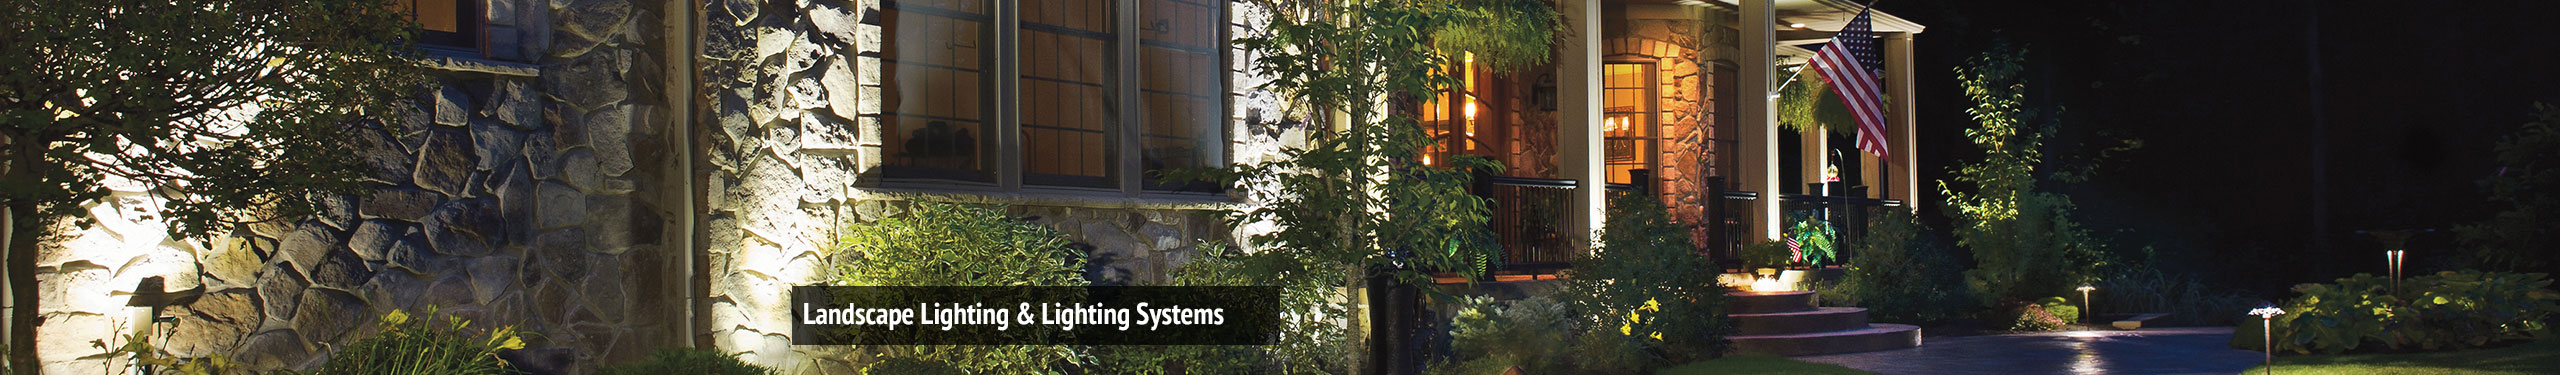 Landscape Lighting & Lighting Systems